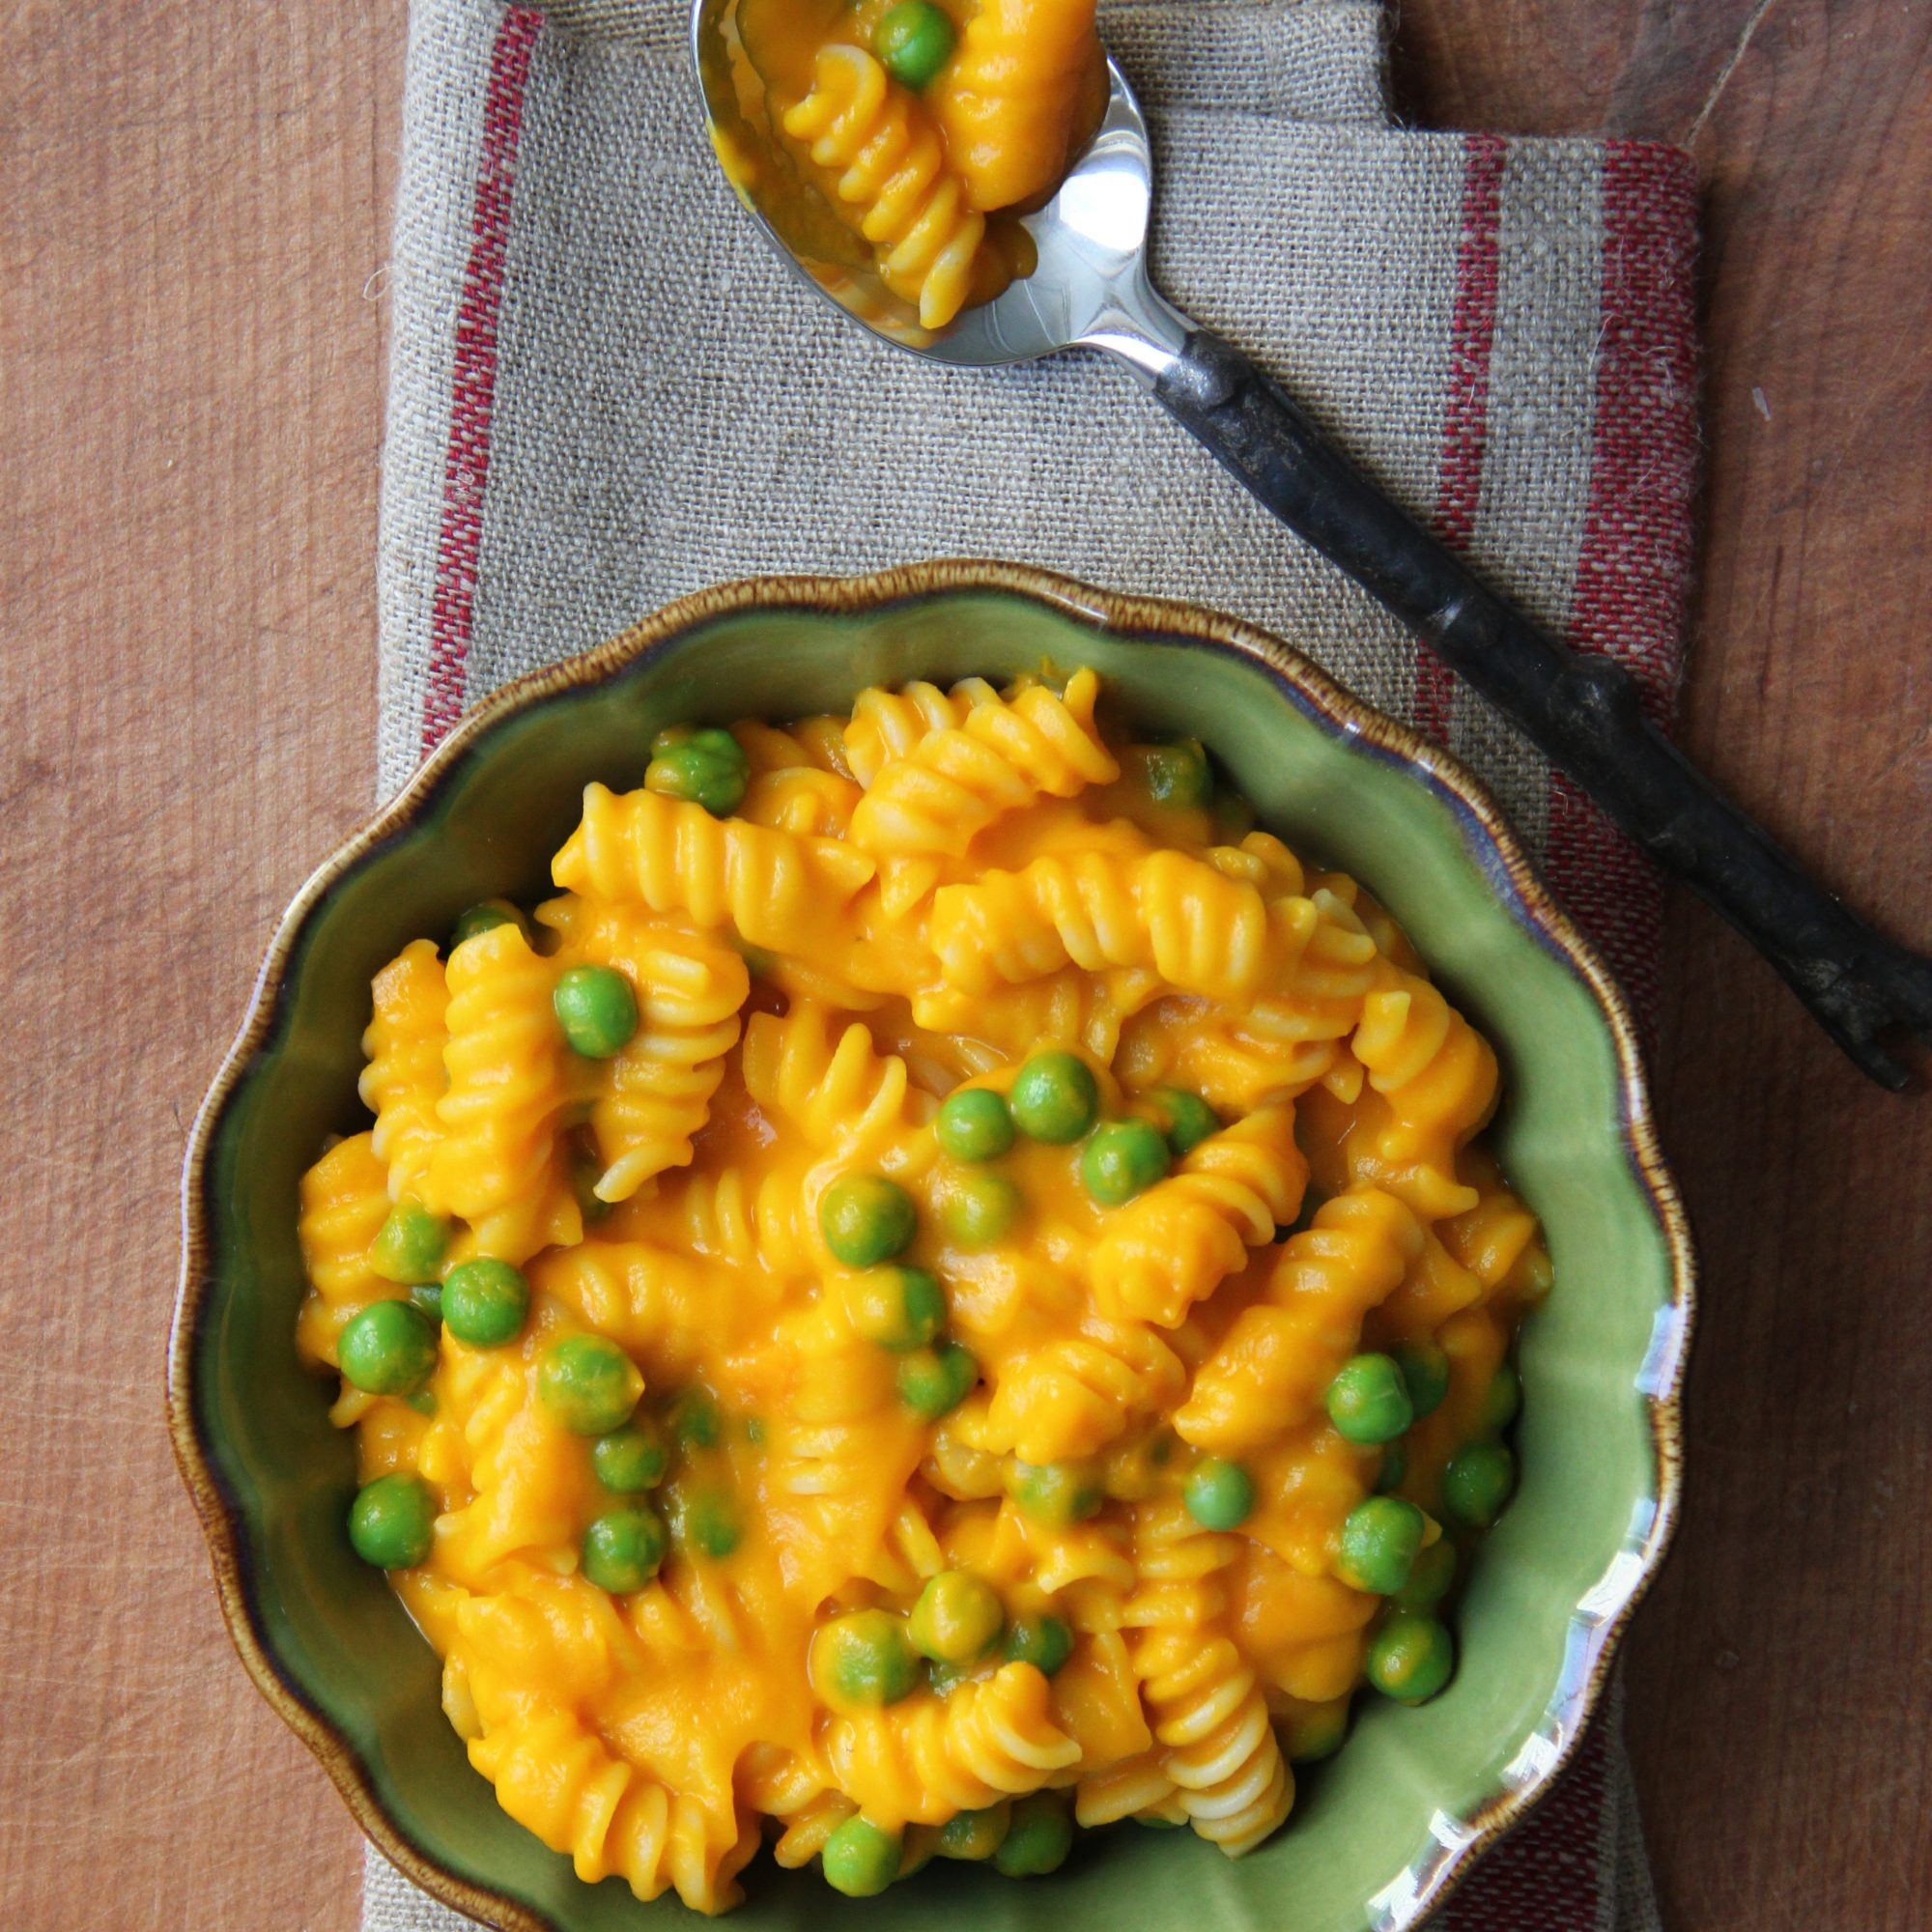 Carrots and Peas Mac and Cheese